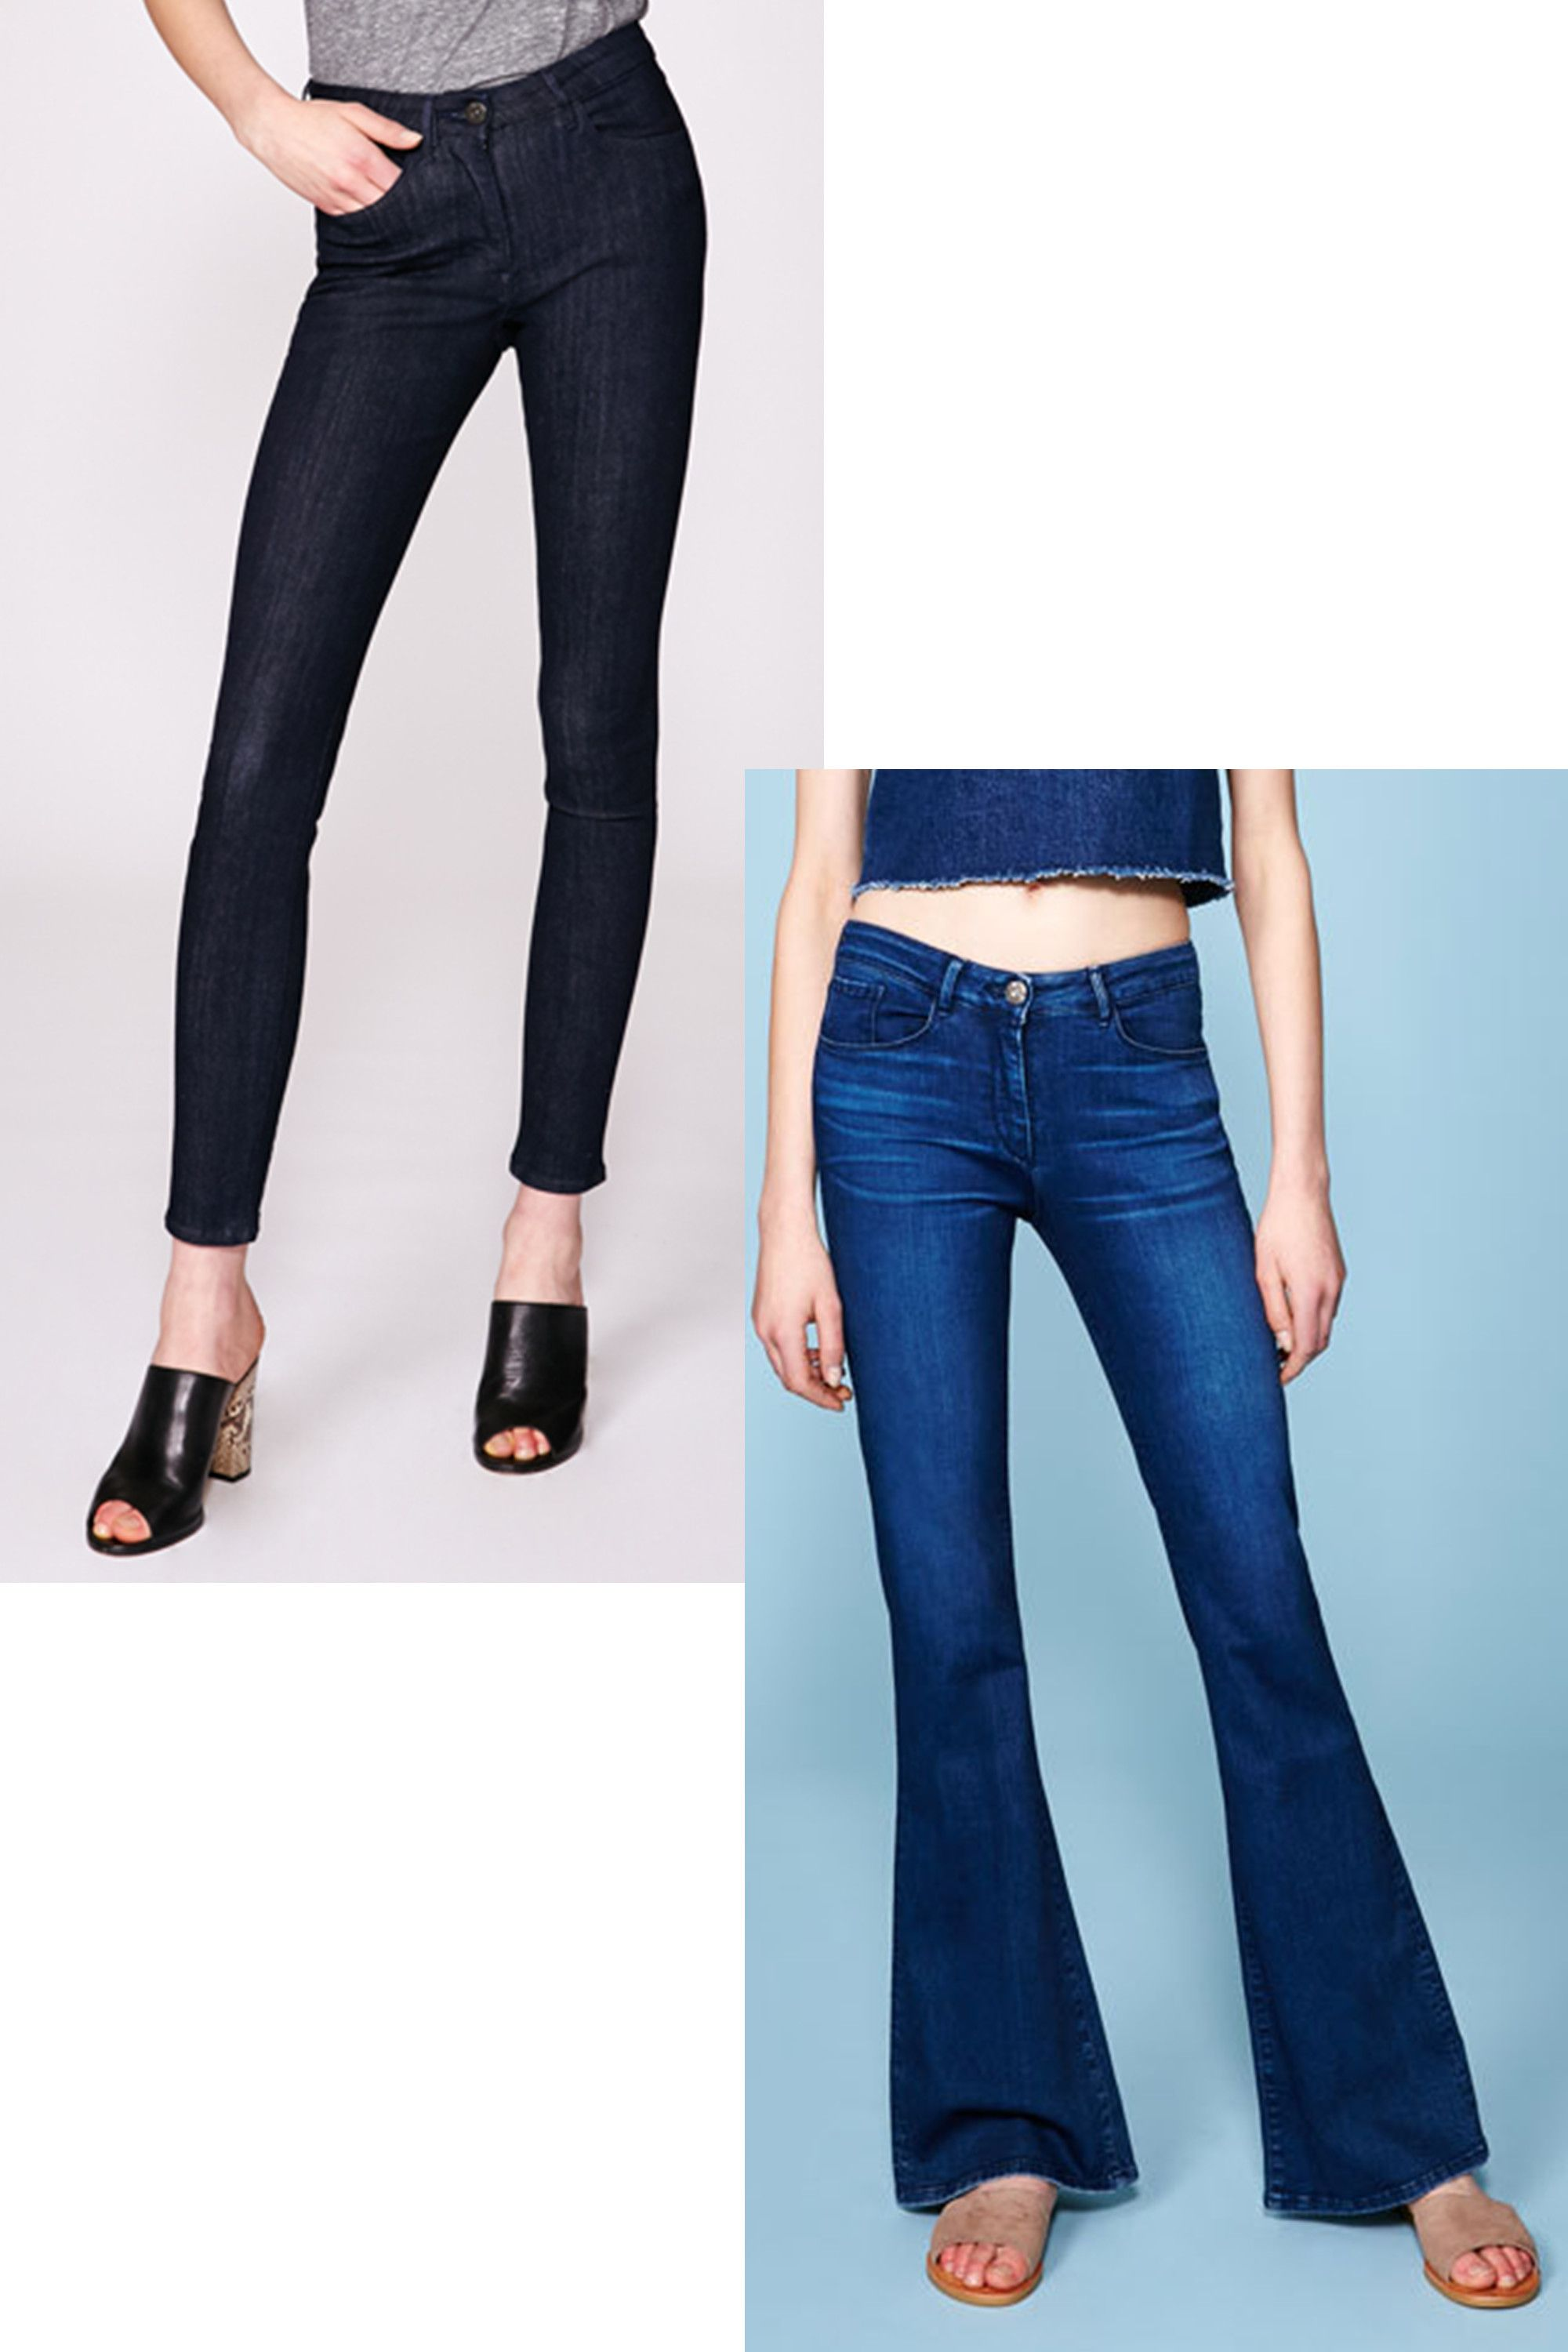 "<p>Riff off the Canadian tuxedo look with a denim crop top over '70s-style bell bottoms. Or, sign up for a super slimming pair of dark wash jeans.</p><p><strong>Bell Bottom Atmos, $195; <a href=""http://3x1.us/shop-women/w25-bell-bottom-atmos/"">3x1.us</a>. High Rise Channel Seam Skinny, #185; <a href=""http://3x1.us/shop-women/w3-high-rise-channel-seam-skinny-alpha/"">3x1.us</a>.</strong></p>"